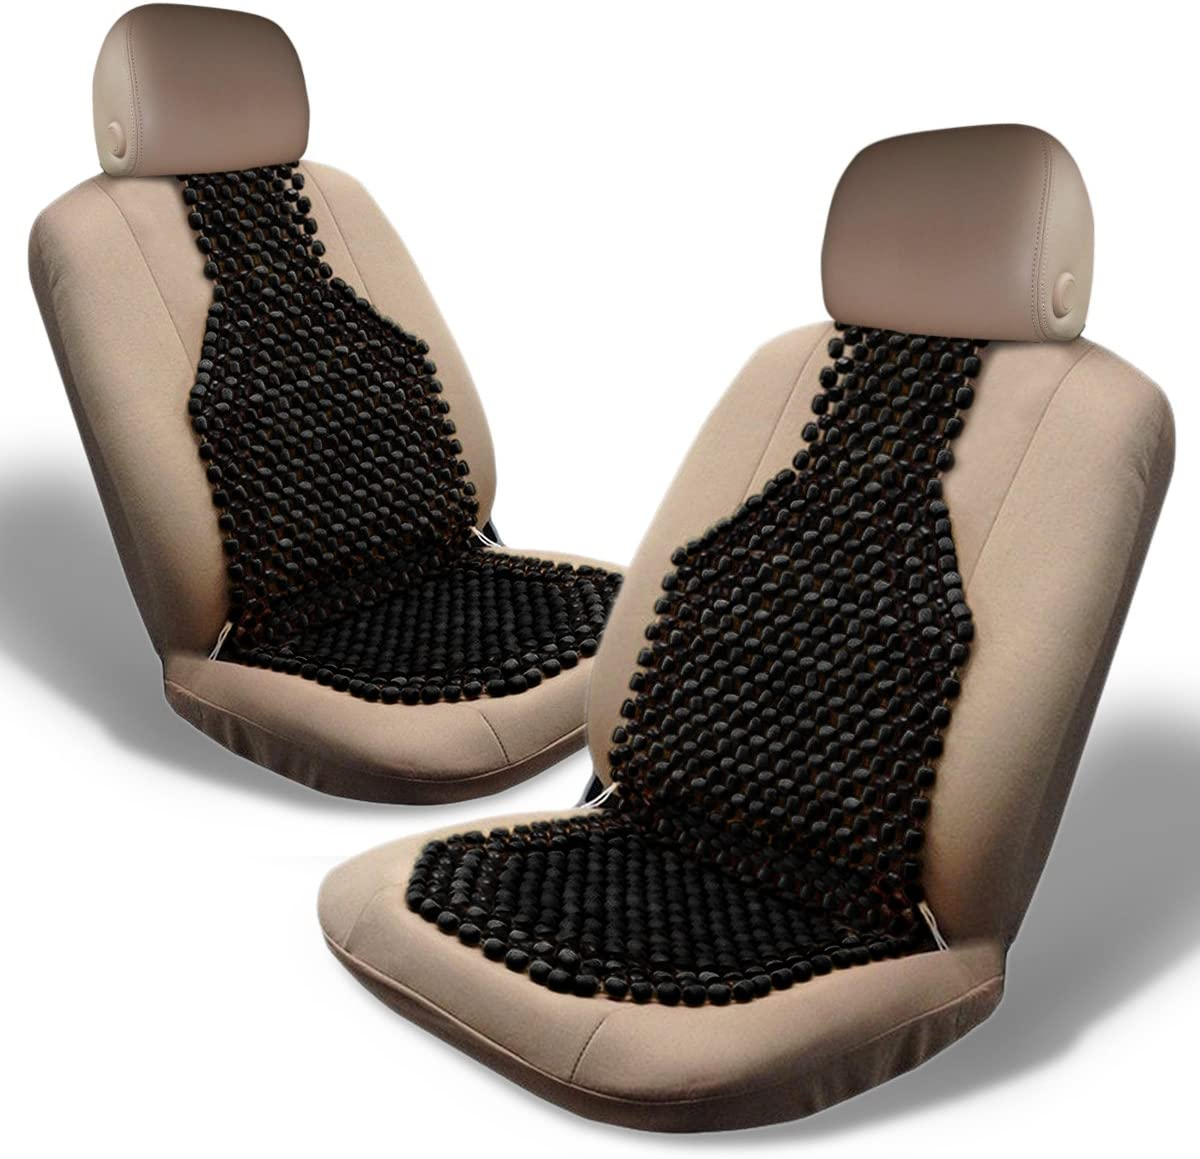 Zone Tech Massage Car Seat Cover Wood Beaded Cushion Roller Chair Motorcycle